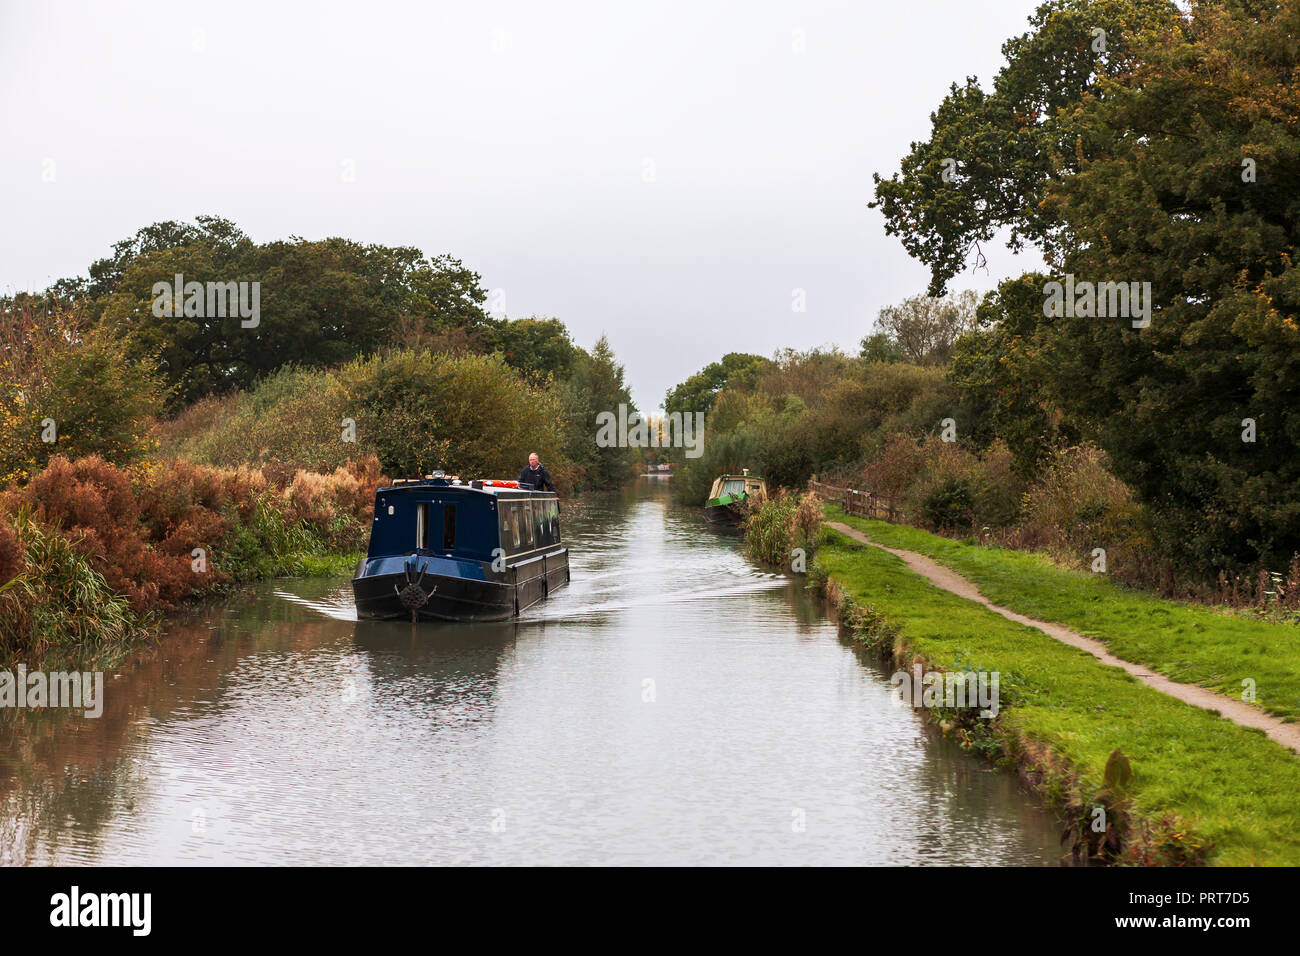 The Grand Union Canal just west of Braunston, Northamptonshire, England, UK - Stock Image